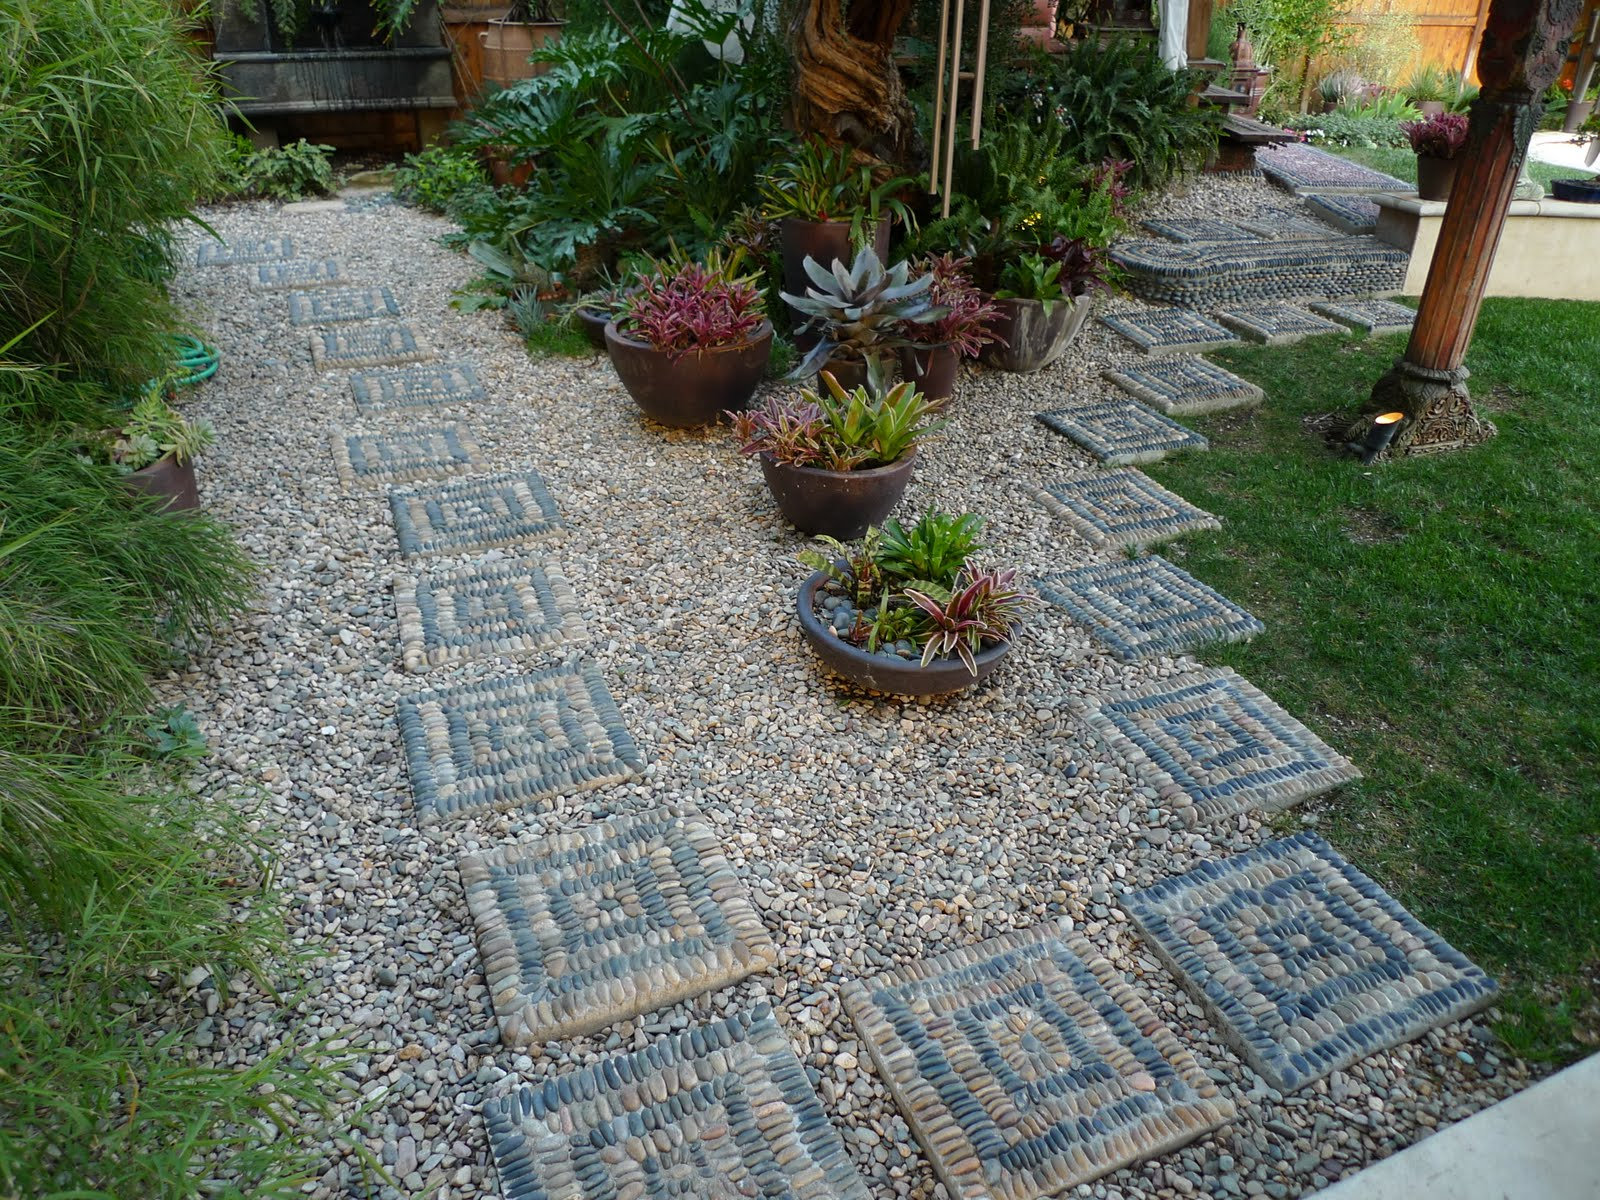 Jeffrey Bales World Of Gardens Building A Pebble Mosaic - gravel garden design